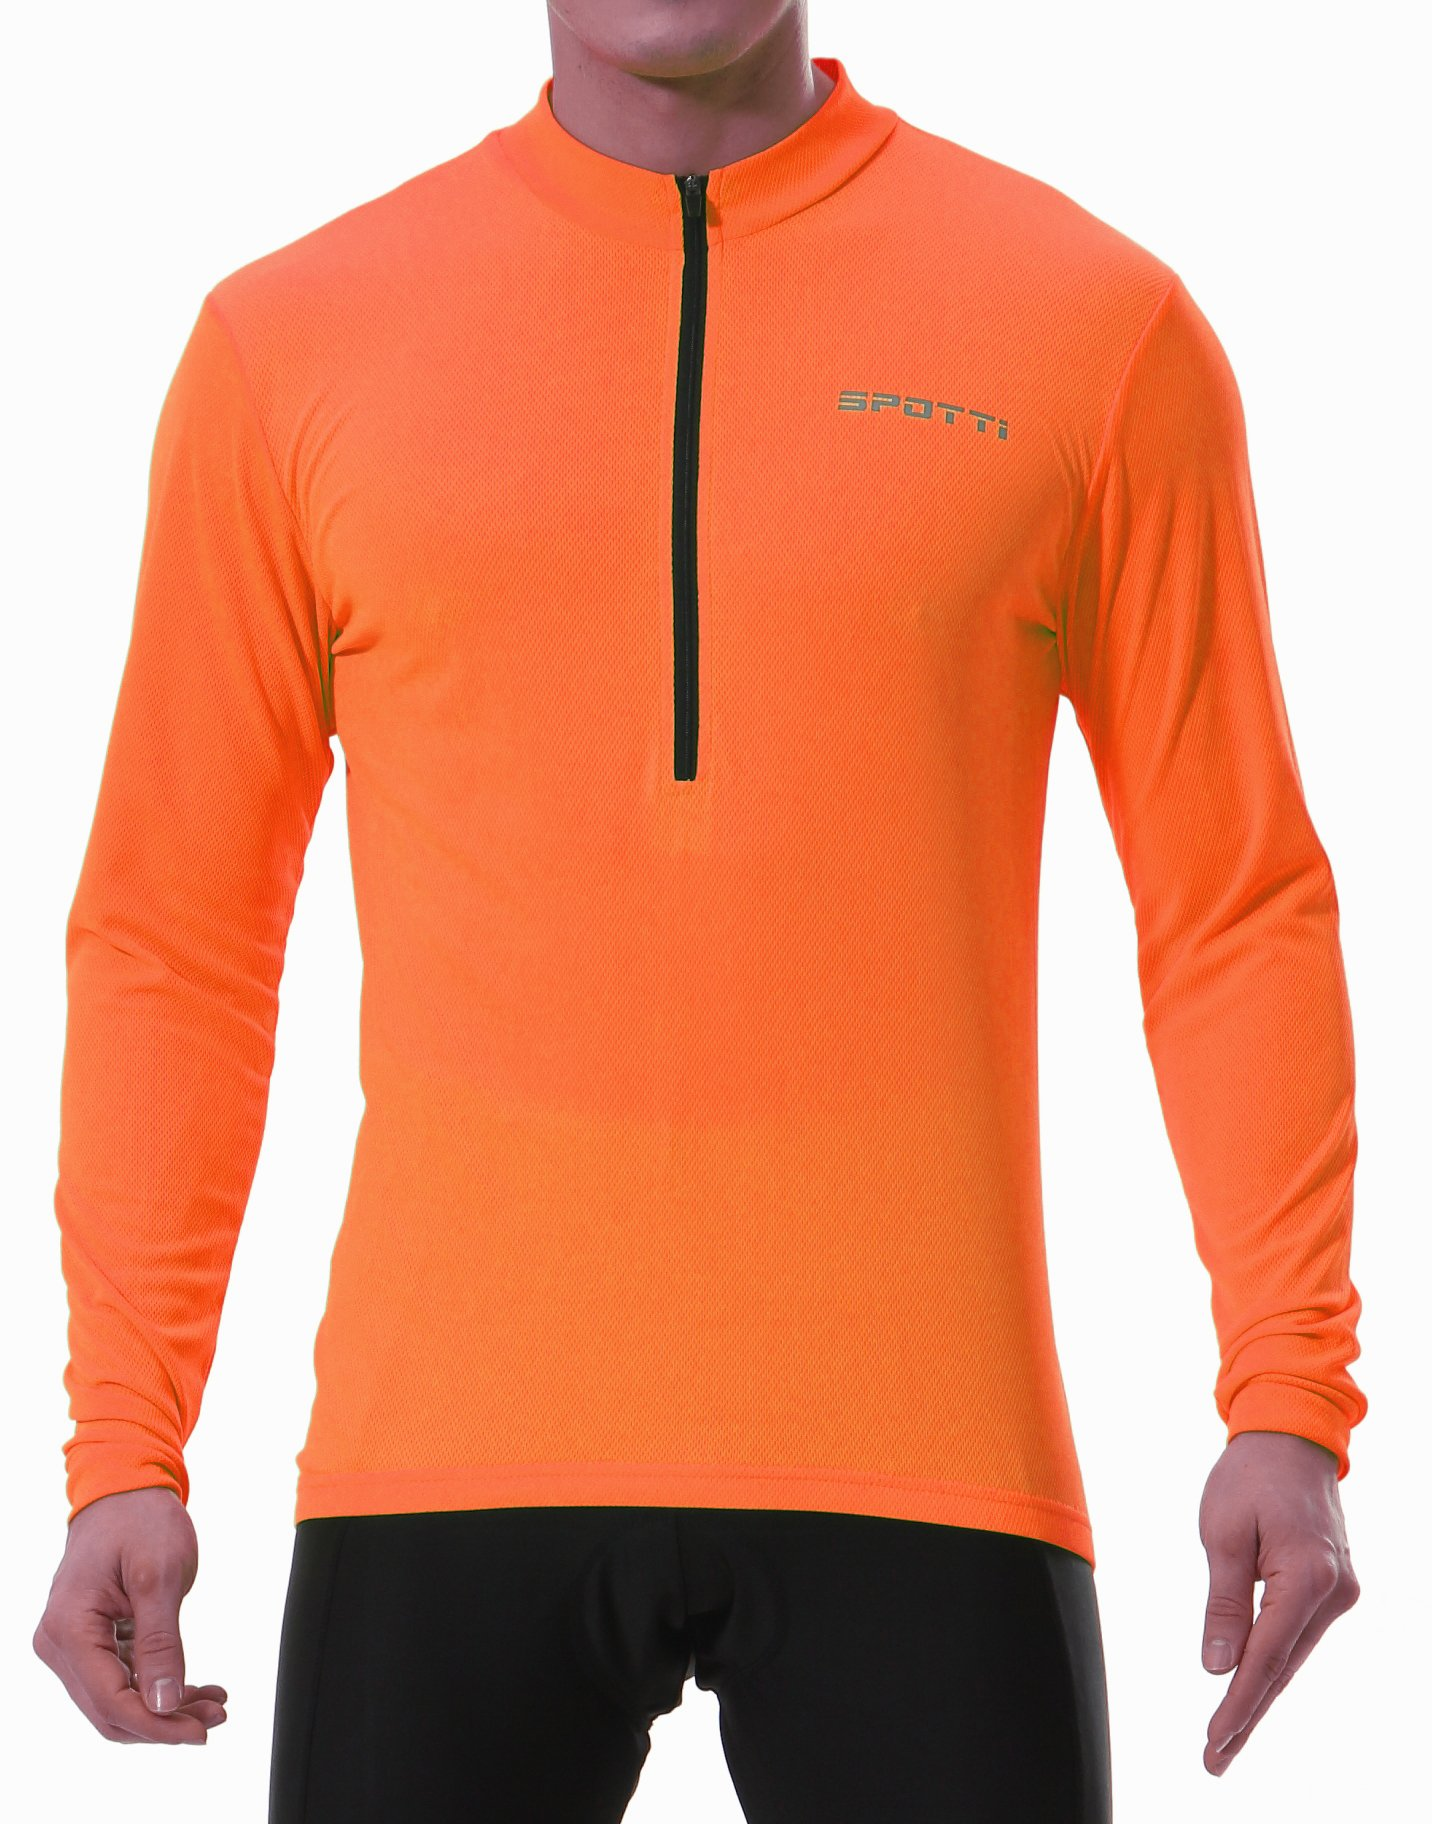 Spotti Men's Long Sleeve Cycling Jersey, Bike Biking Shirt- Breathable and Quick Dry (Chest 36-38 - Small, Orange)